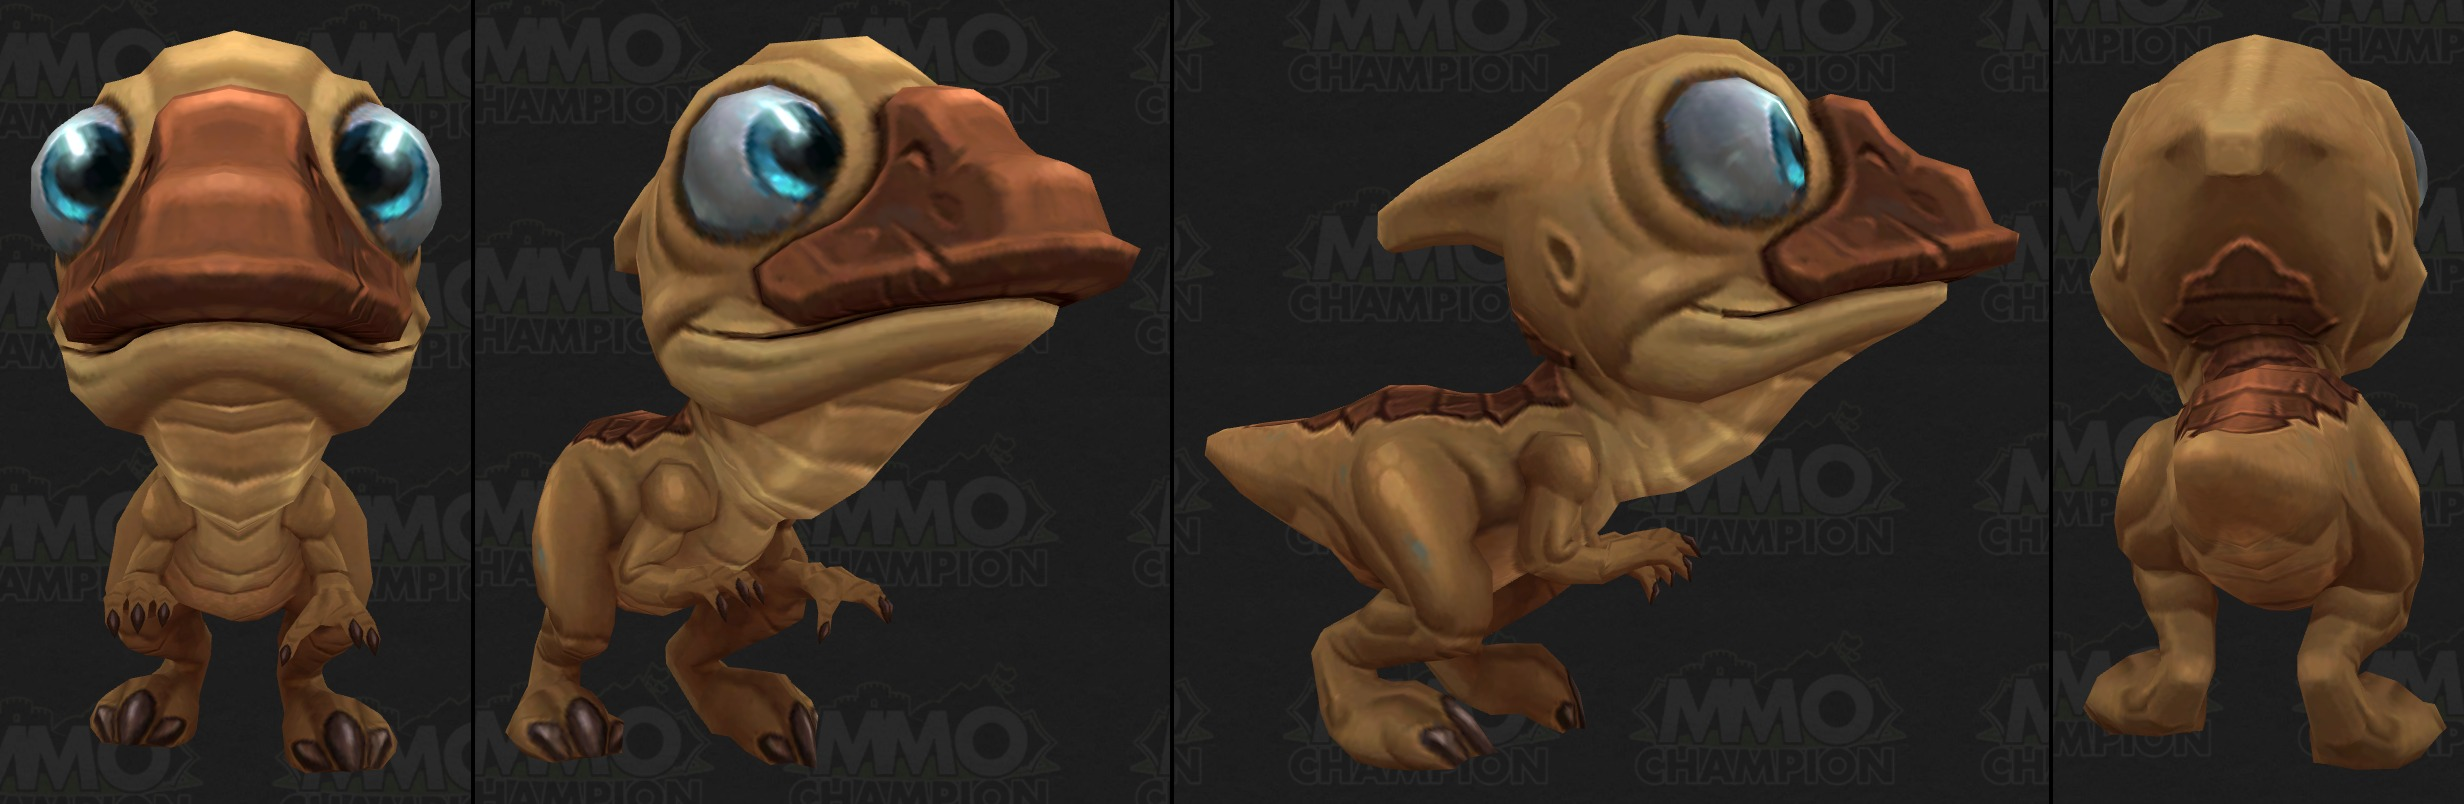 Battle for Azeroth Alpha - Build 25902 Models - Page 2